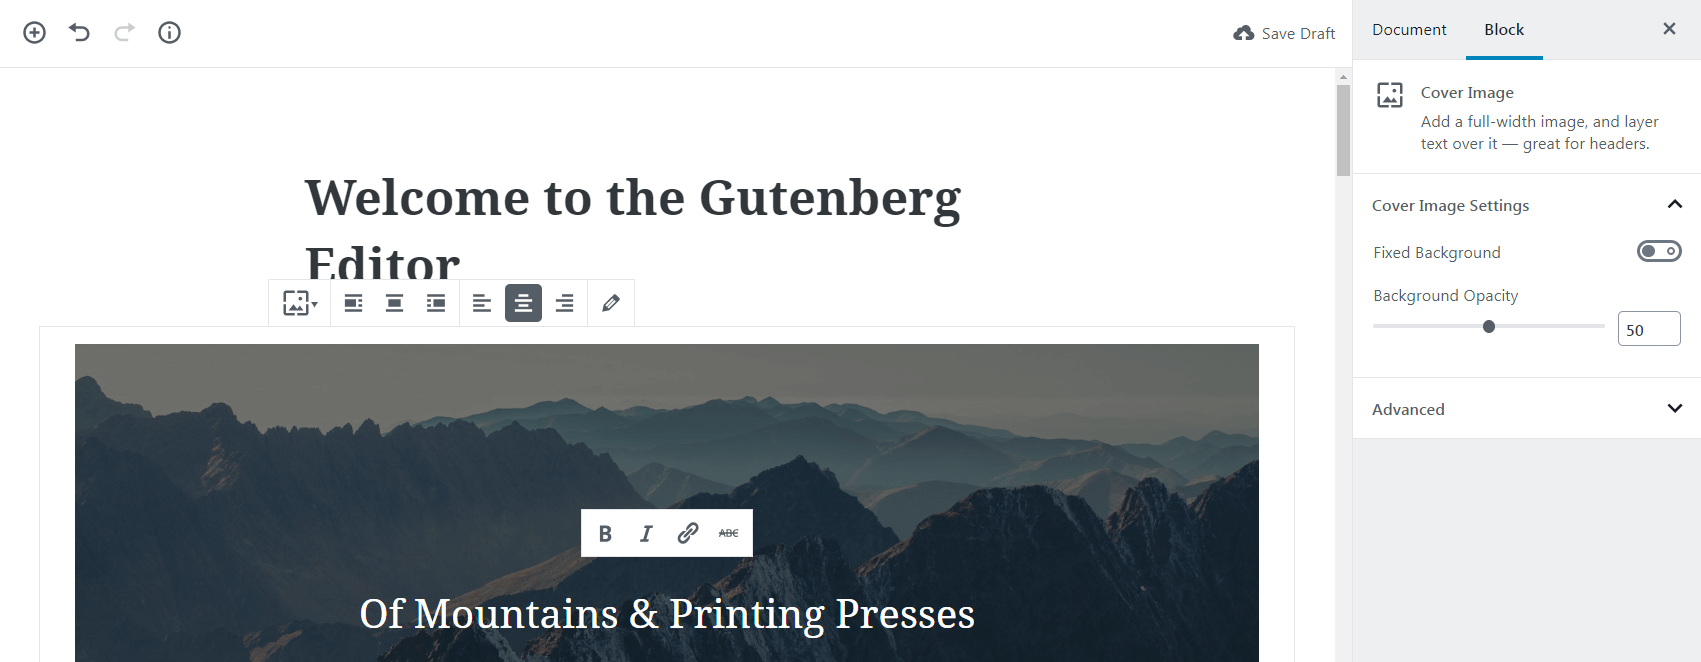 Gutenberg image block settings.